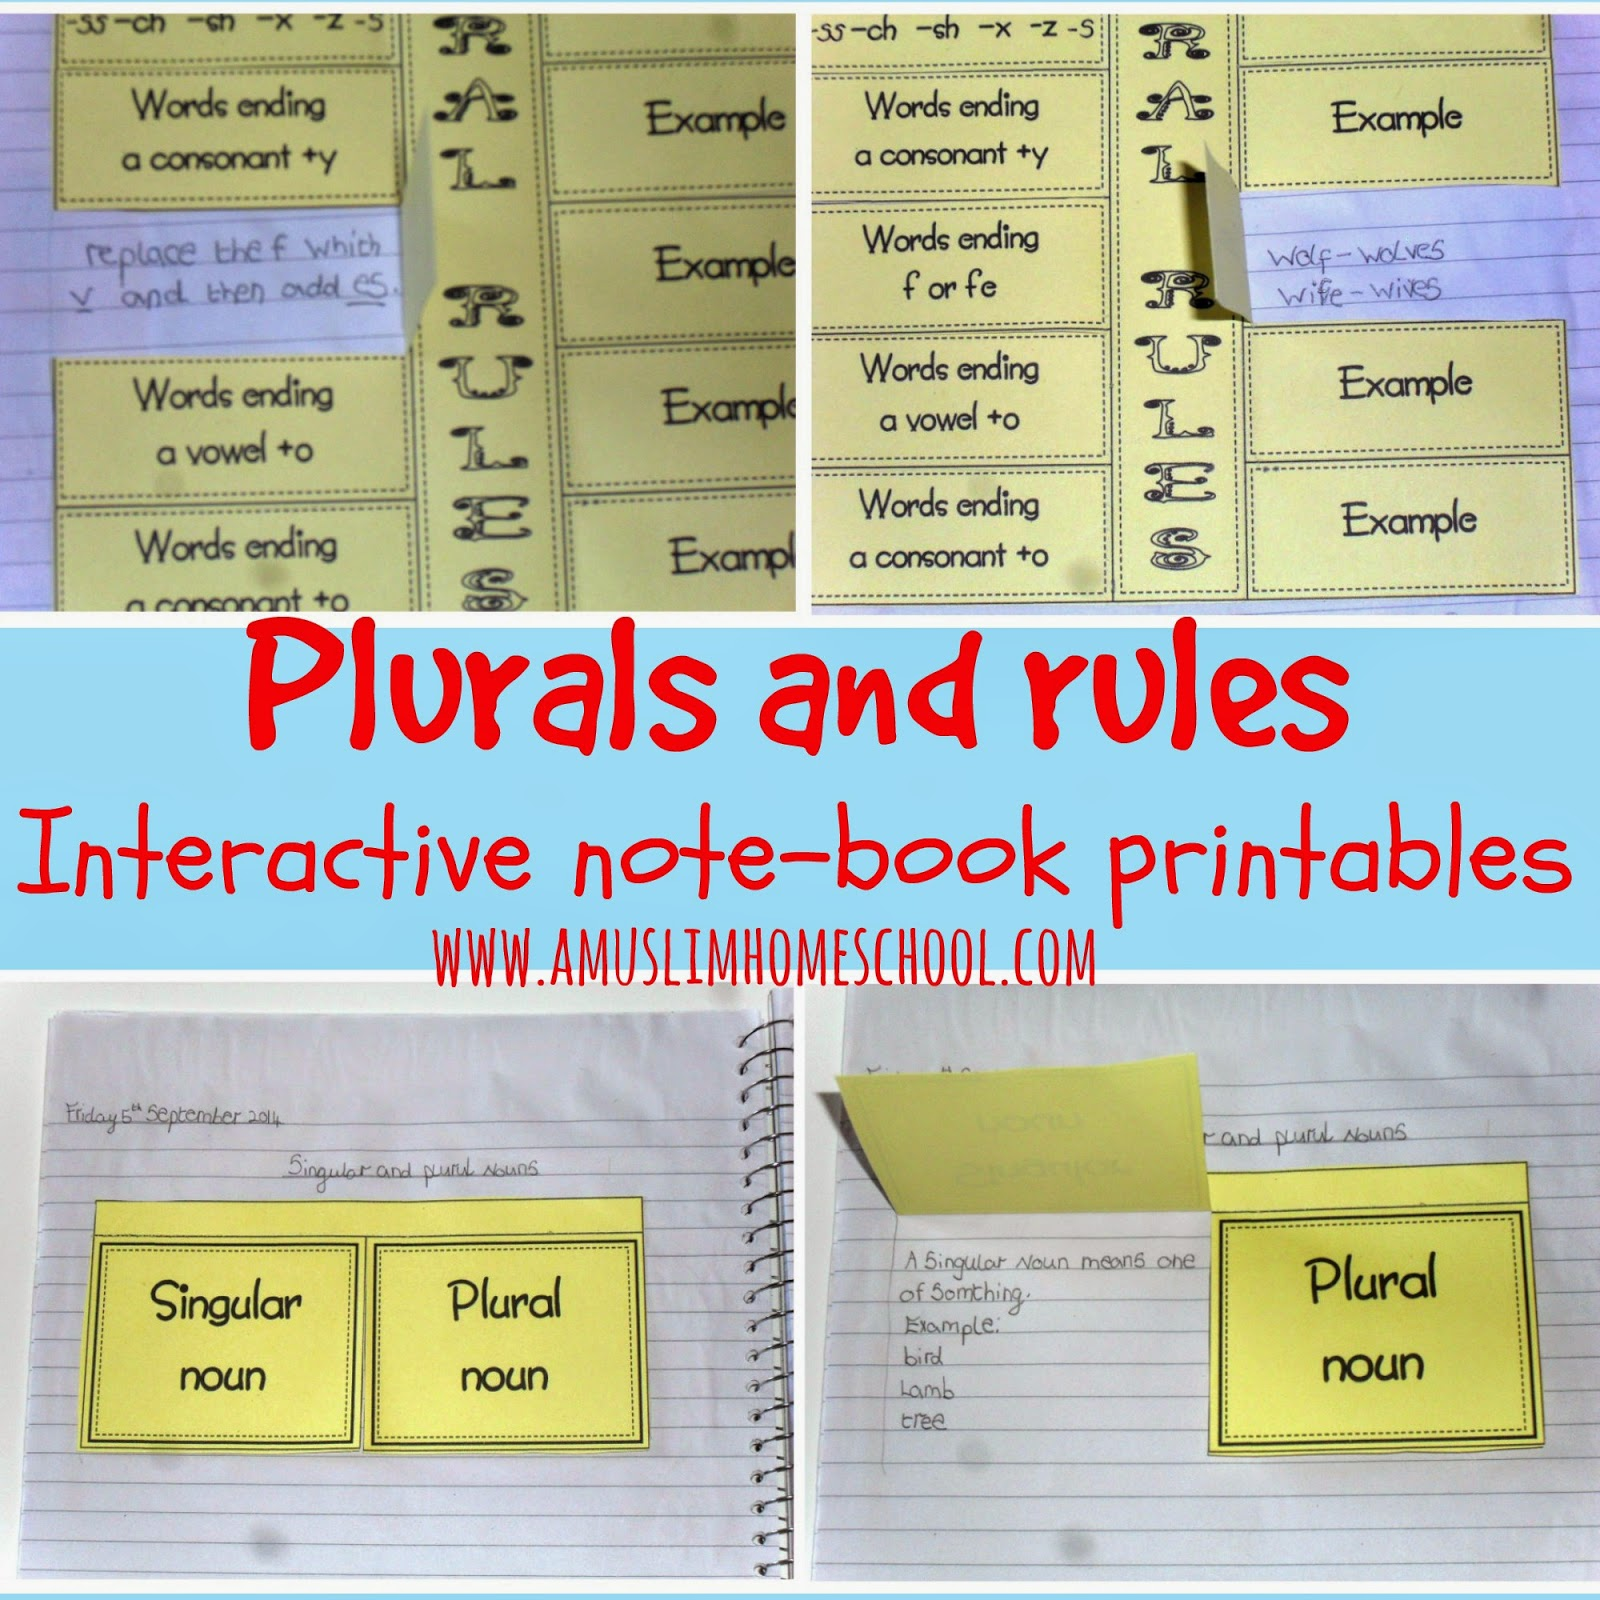 A Muslim Homeschool Plural Rules Free Printables For Interactive